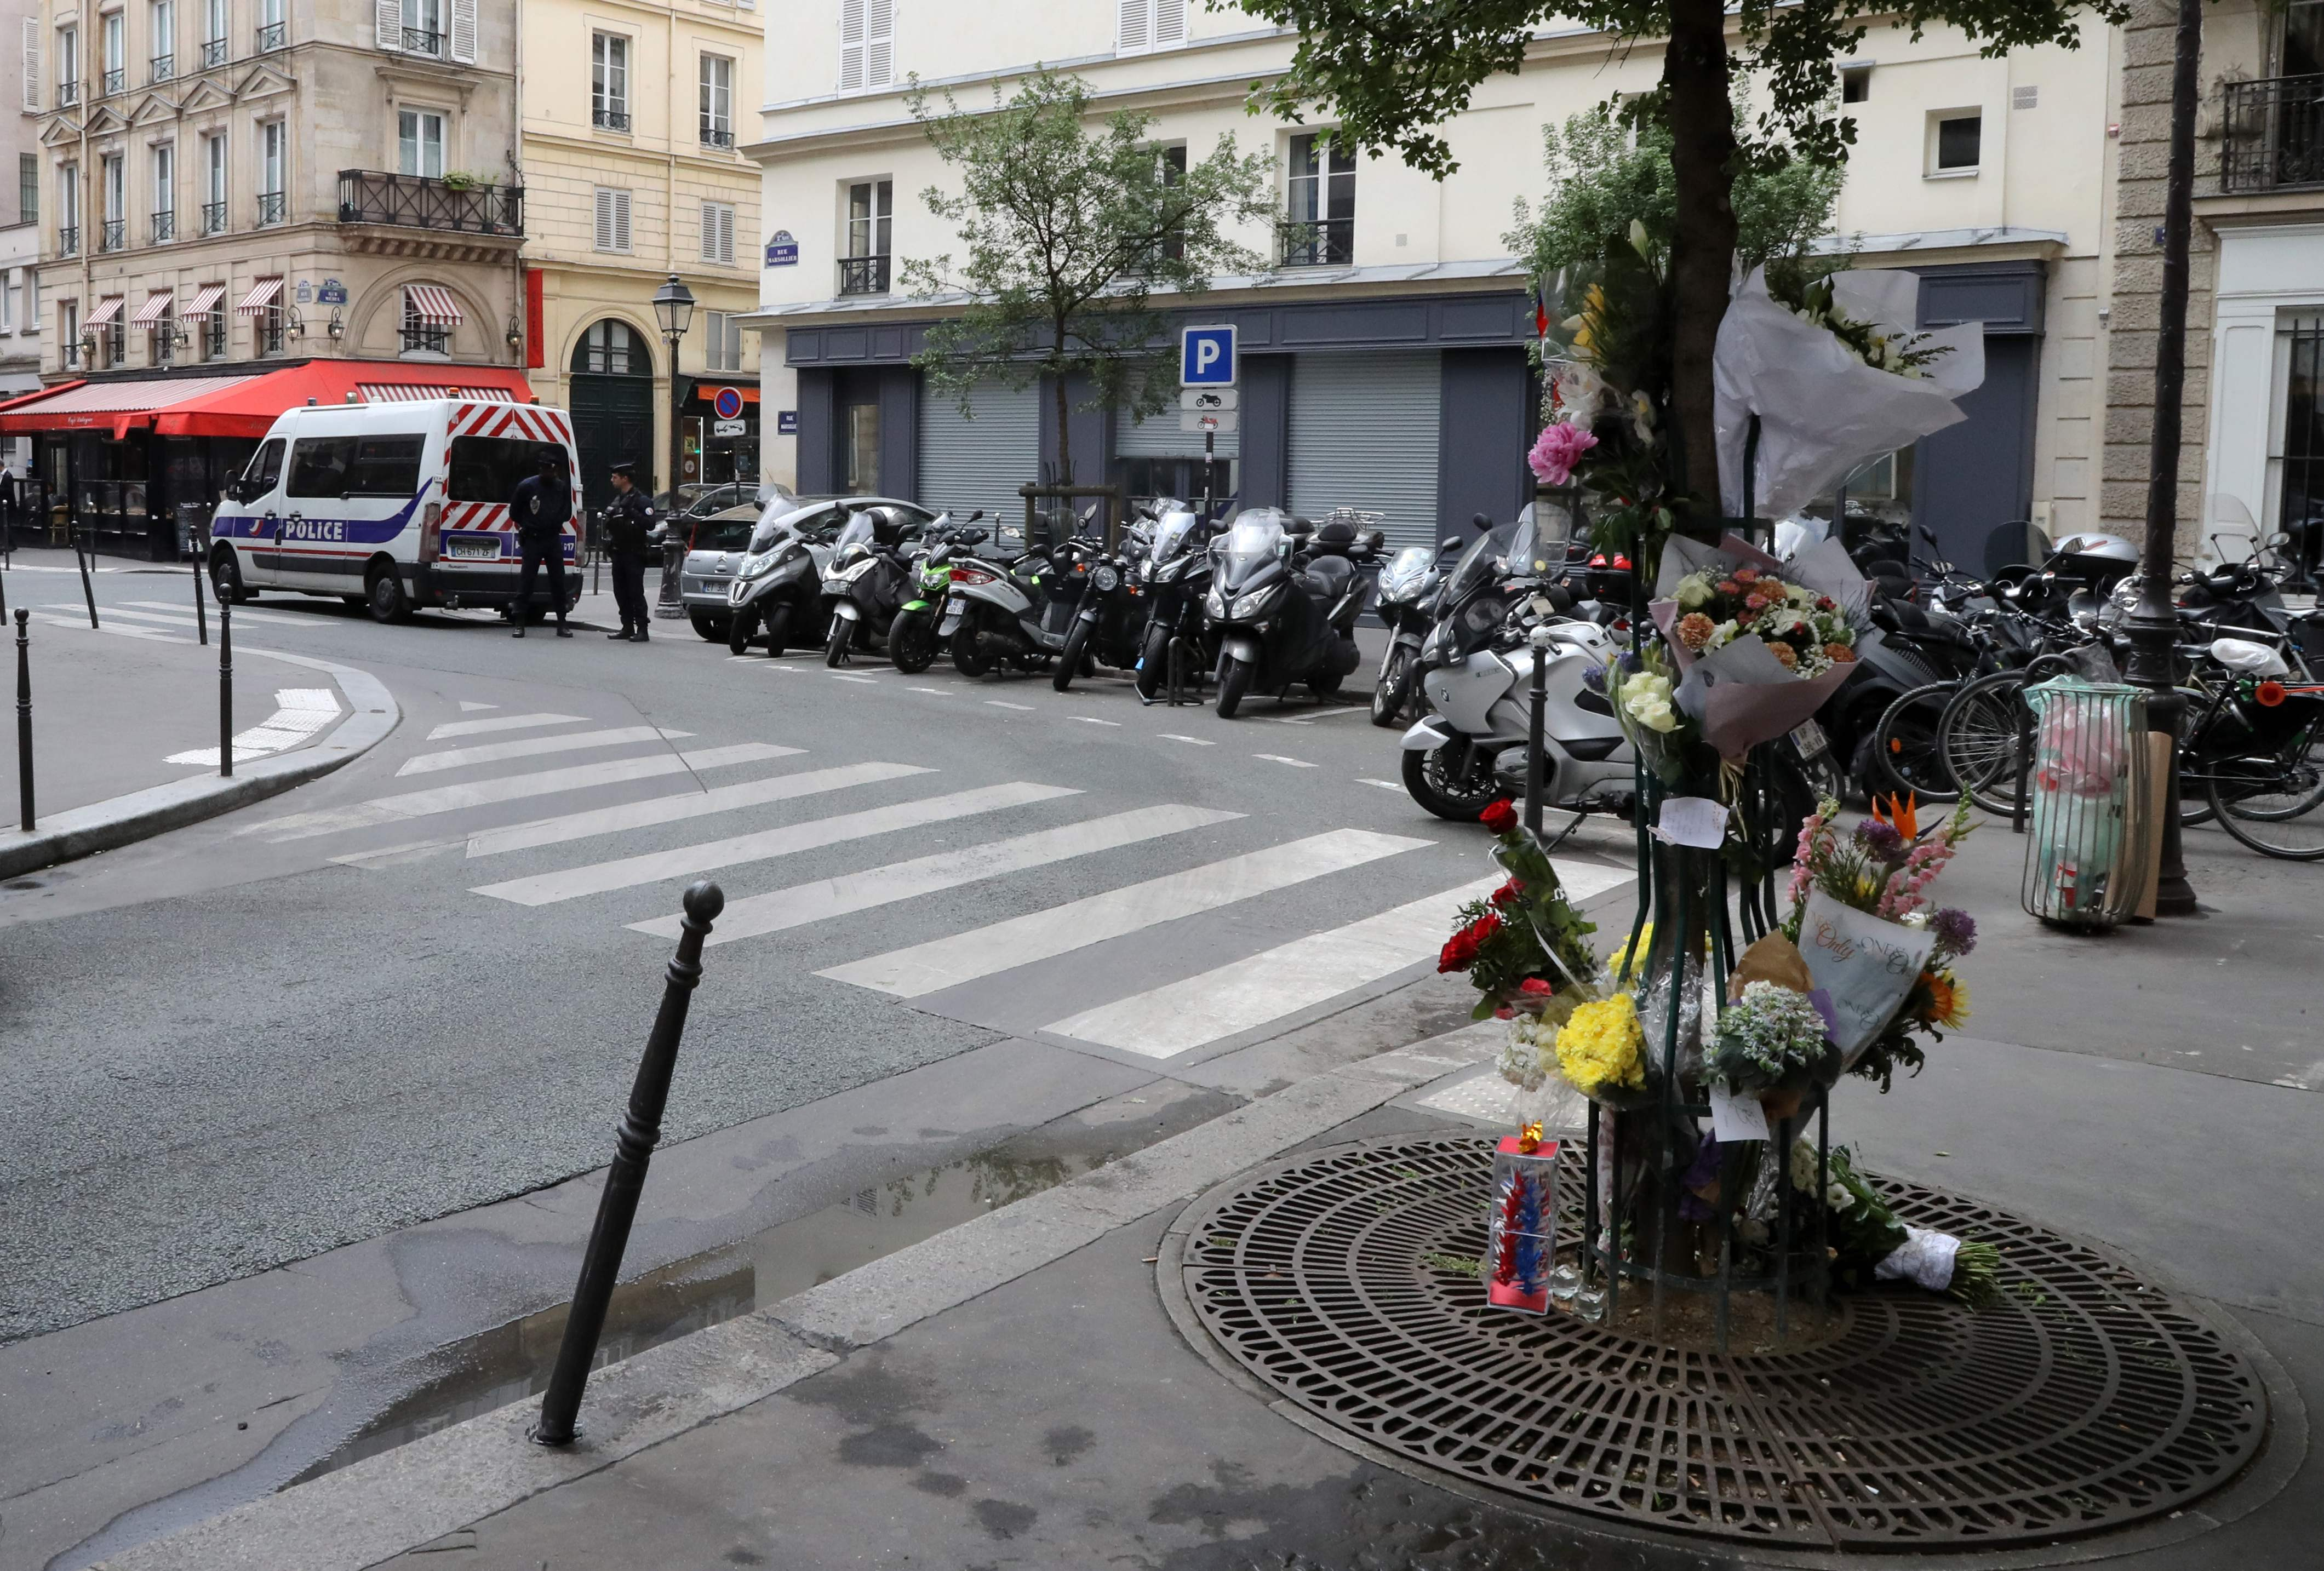 French government says it foiled terror attack; 2 brothers held